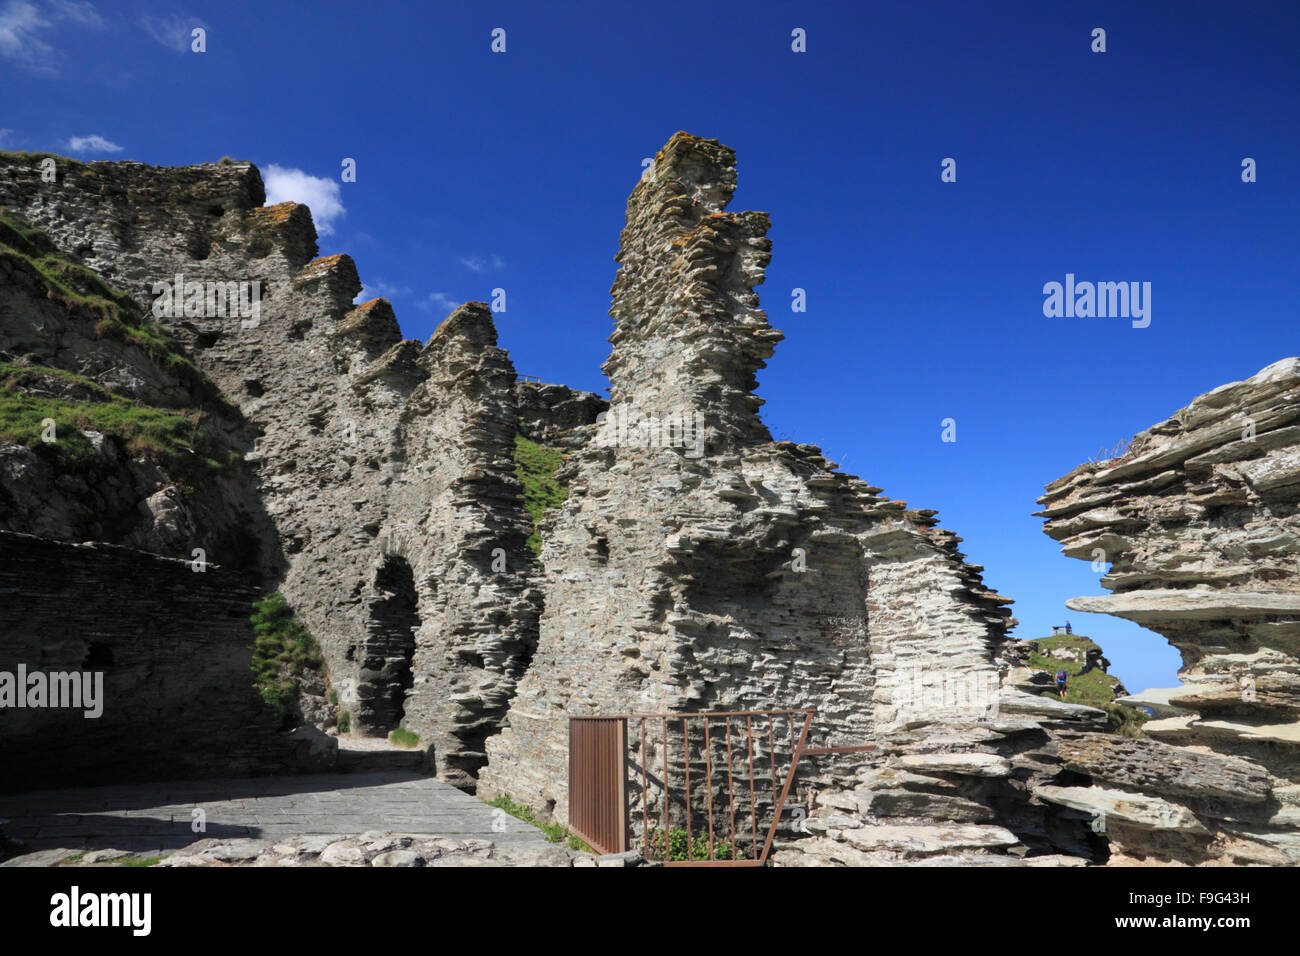 A ruined castle on the cliffs at Tintagel, Cornwall. - Stock Image